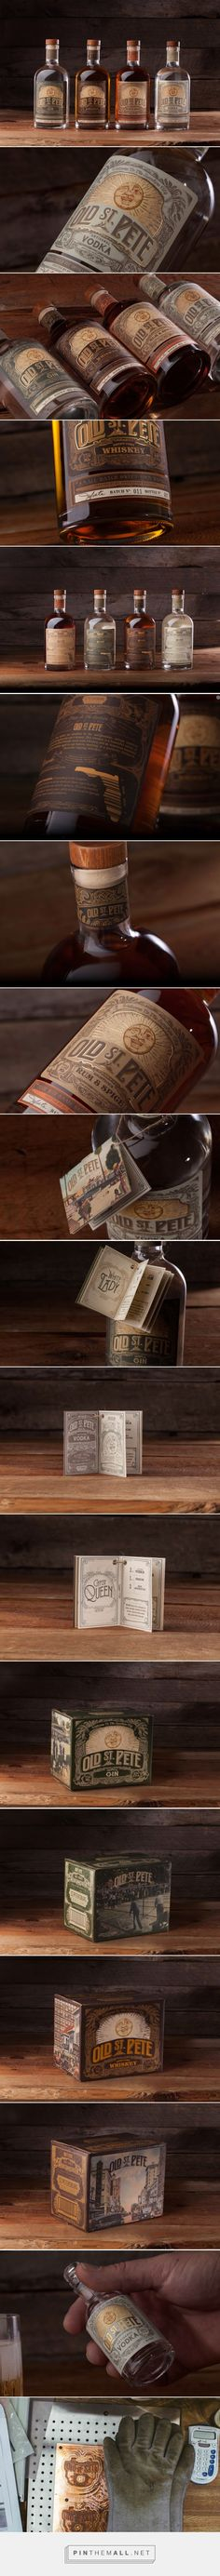 Old St. Pete Craft Spirits Packaging designed by Dunn&Co. - http://www.packagingoftheworld.com/2015/11/old-st-pete-craft-spirits.html